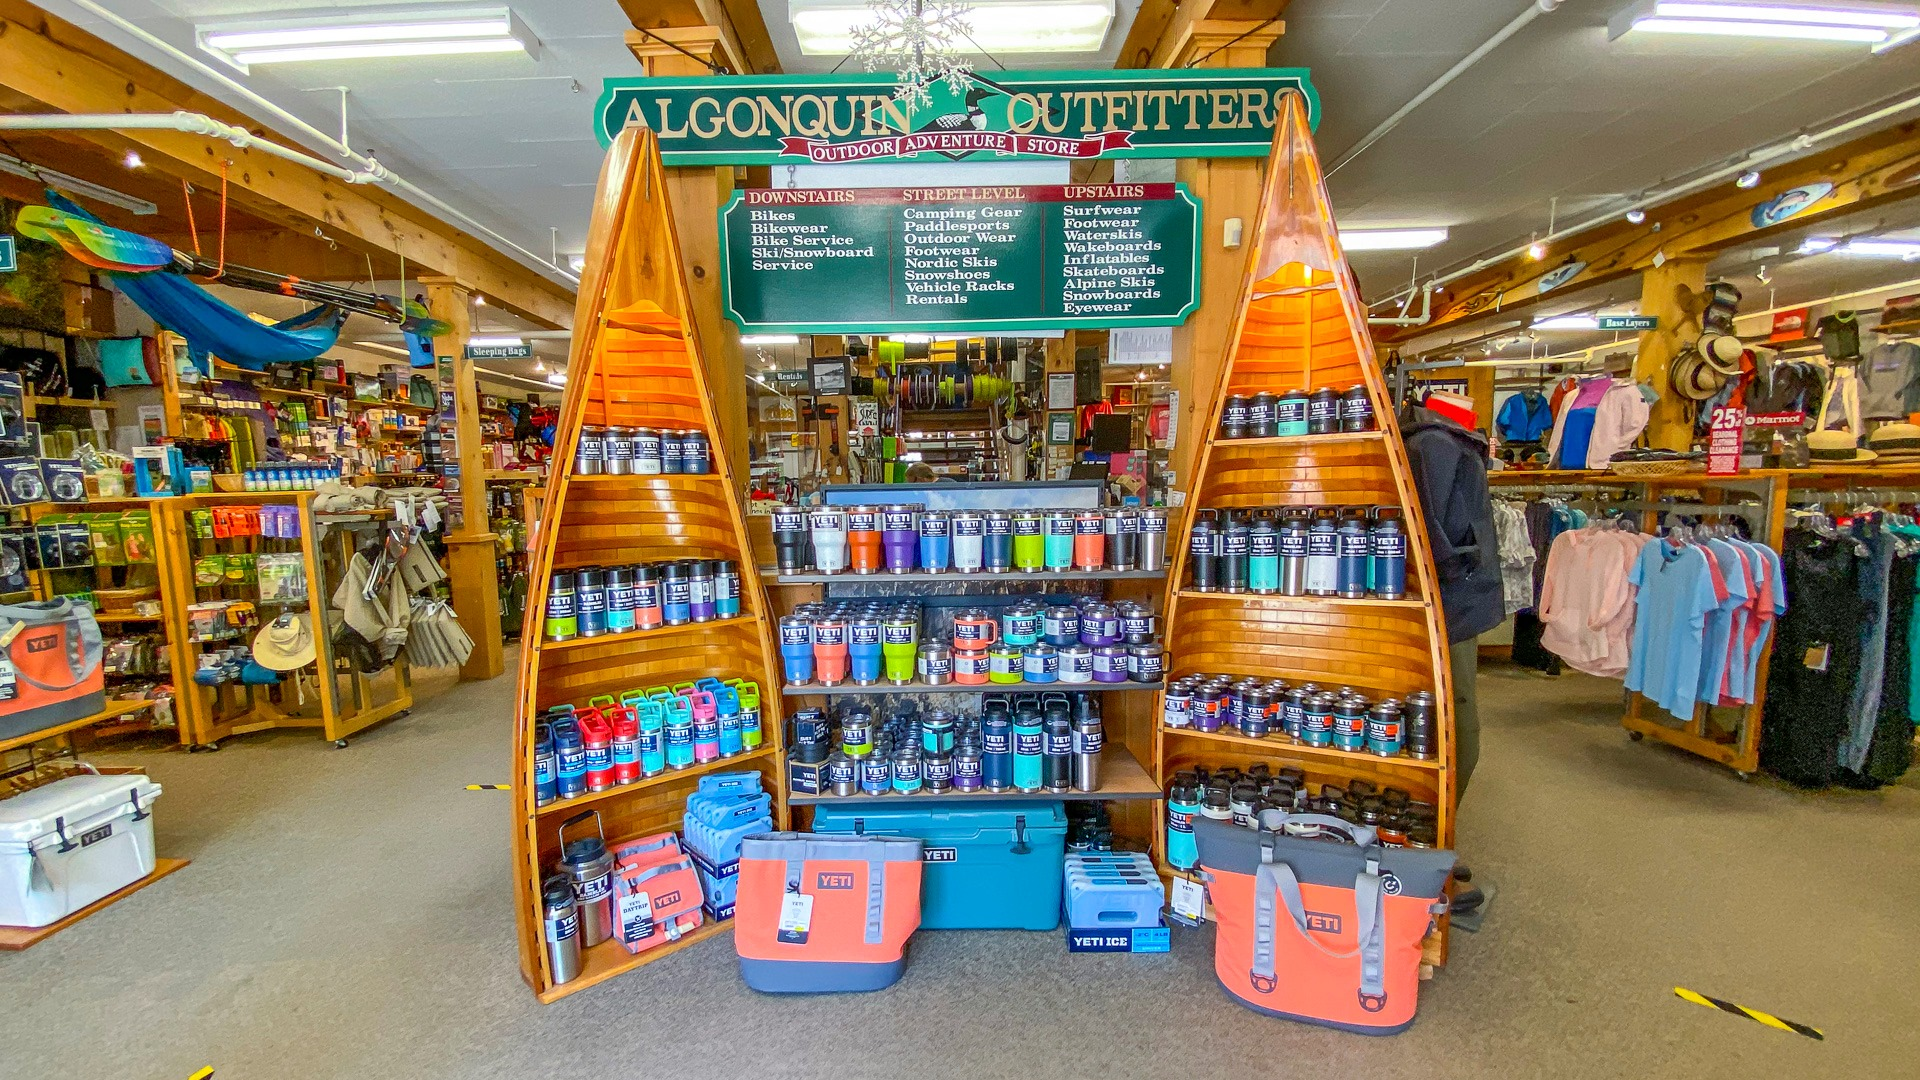 Algonquin Outfitters Storefront